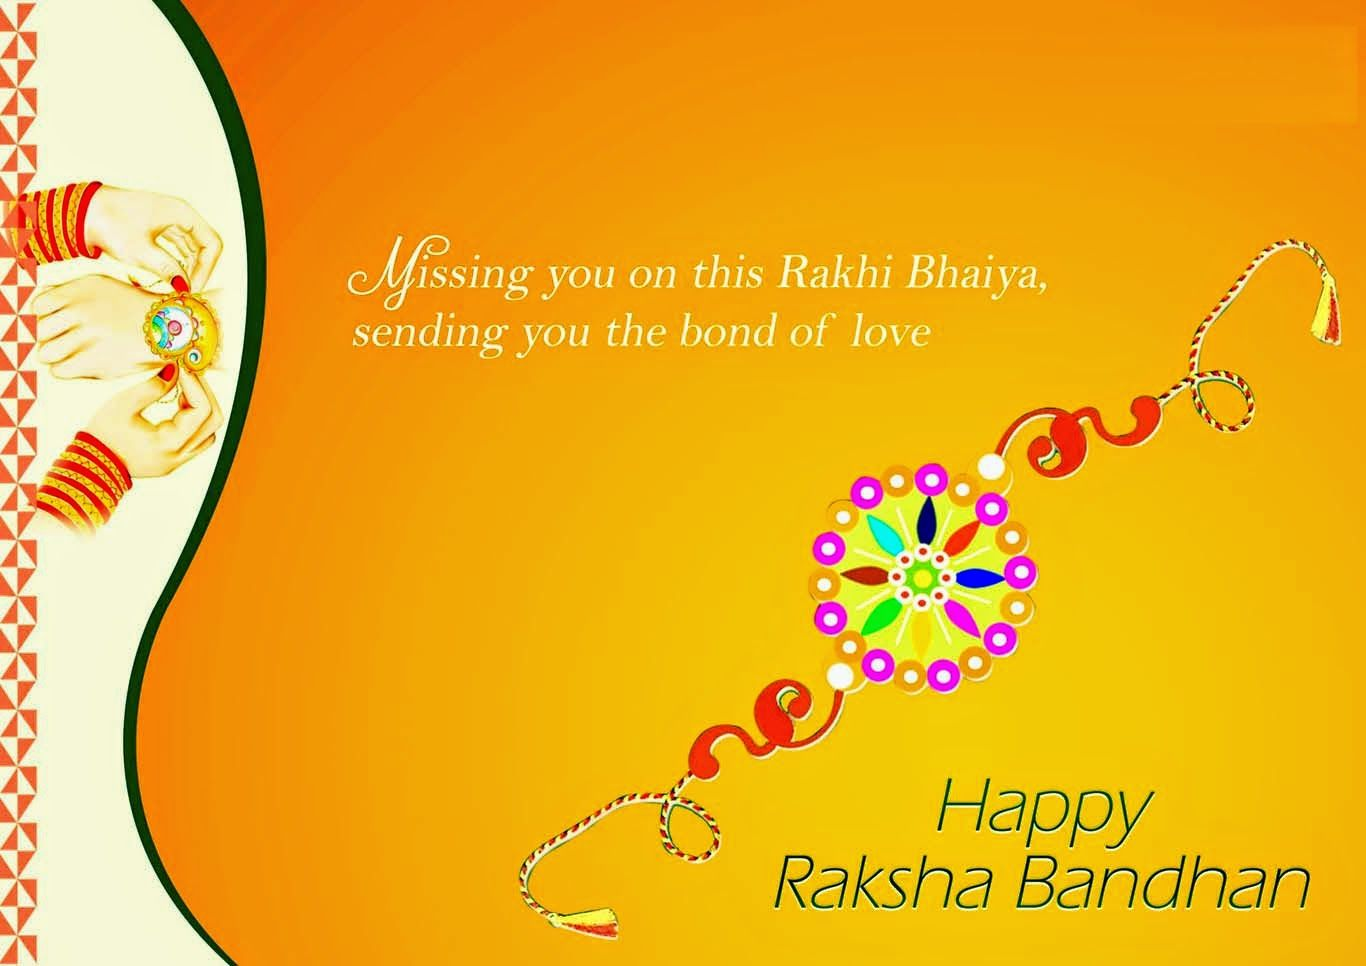 happy raksha bandhan images festivals book happy happy raksha bandhan images festivals book happy raksha bandhan images raksha bandhan images and happy raksha bandhan